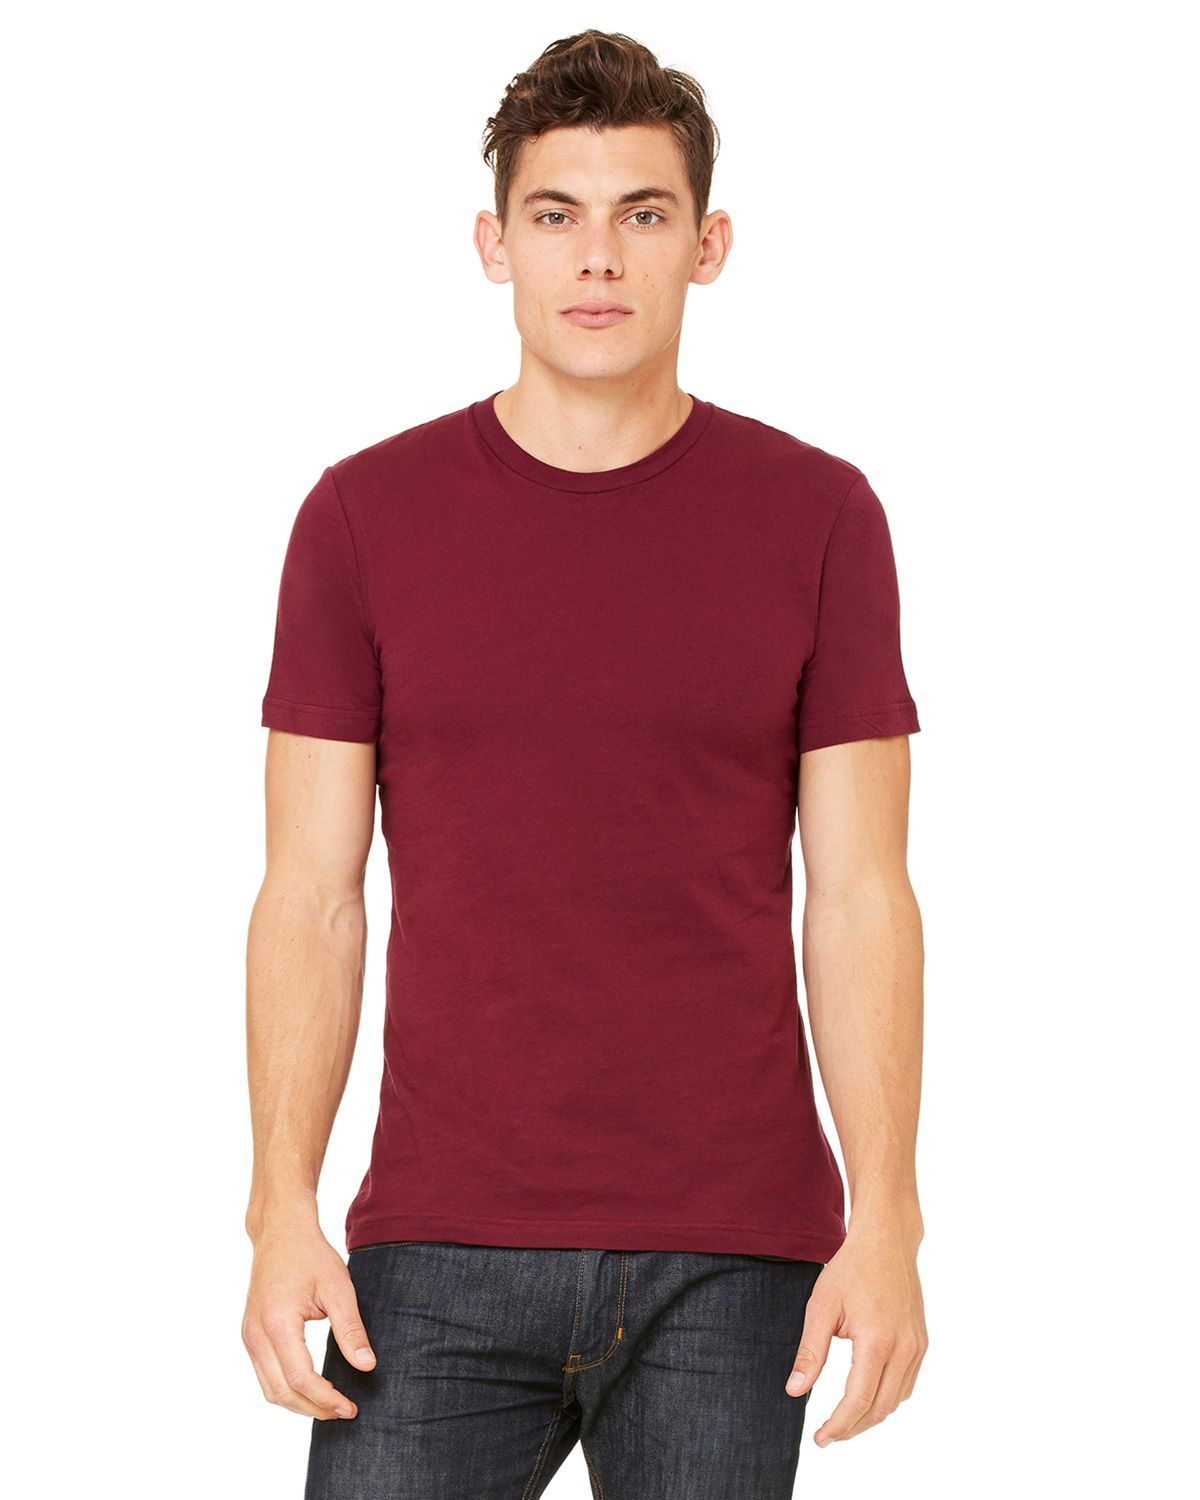 Bella + Canvas 3001C Jersey Short-Sleeve Unisex T-Shirt - Cardinal - XS from Bella + Canvas